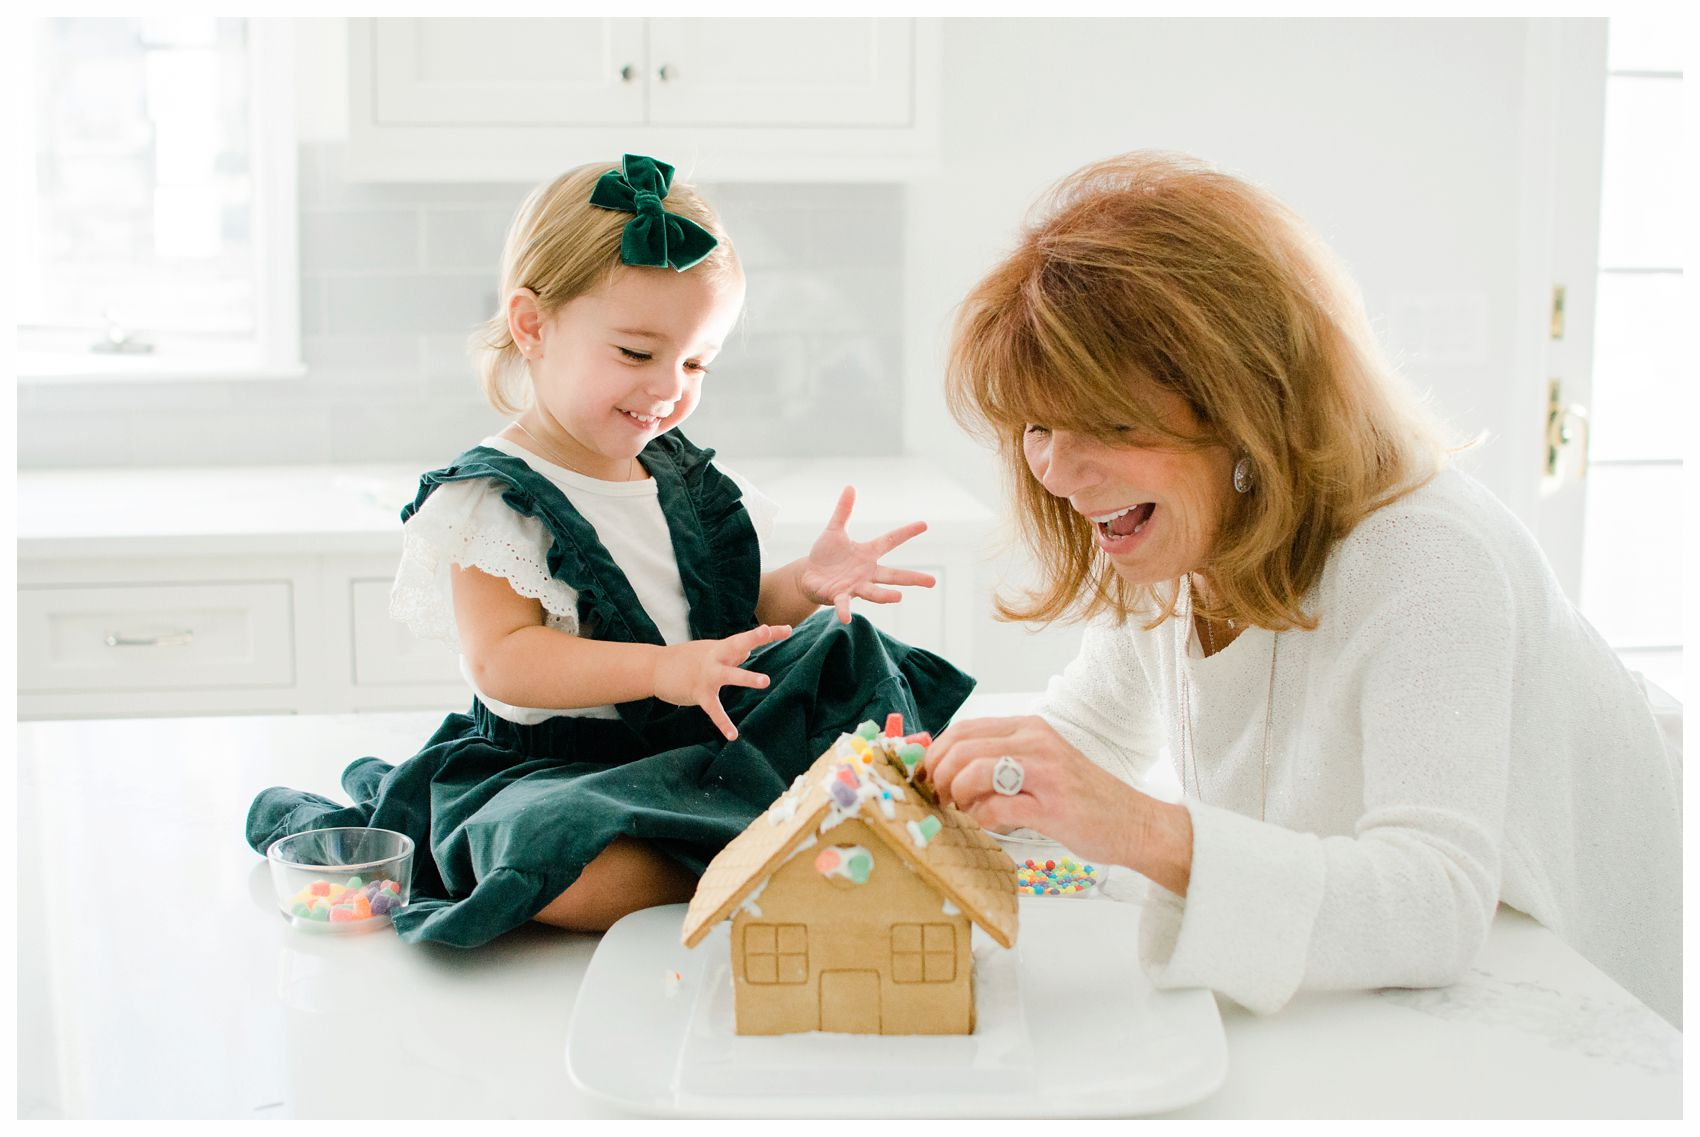 little girl building a gingerbread house with her grandmother for the holiday